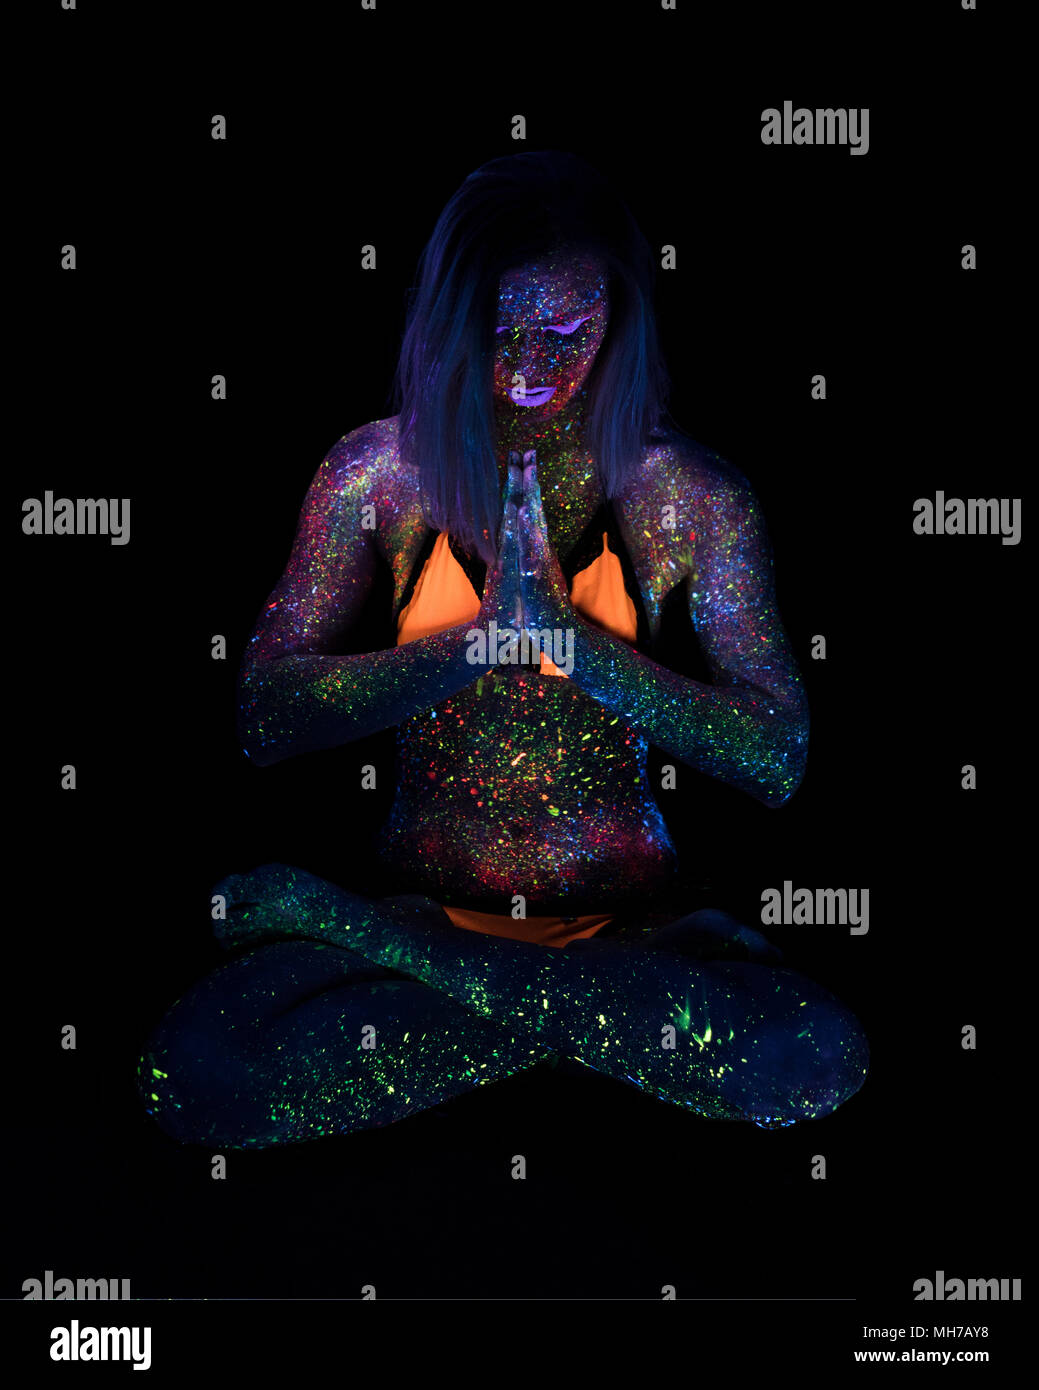 Portrait of Beautiful Fashion Woman Doing Yoga in Neon UF Light. Model Girl with Fluorescent Creative Psychedelic MakeUp, Art Design of Female Disco Dancer Model in UV - Stock Image